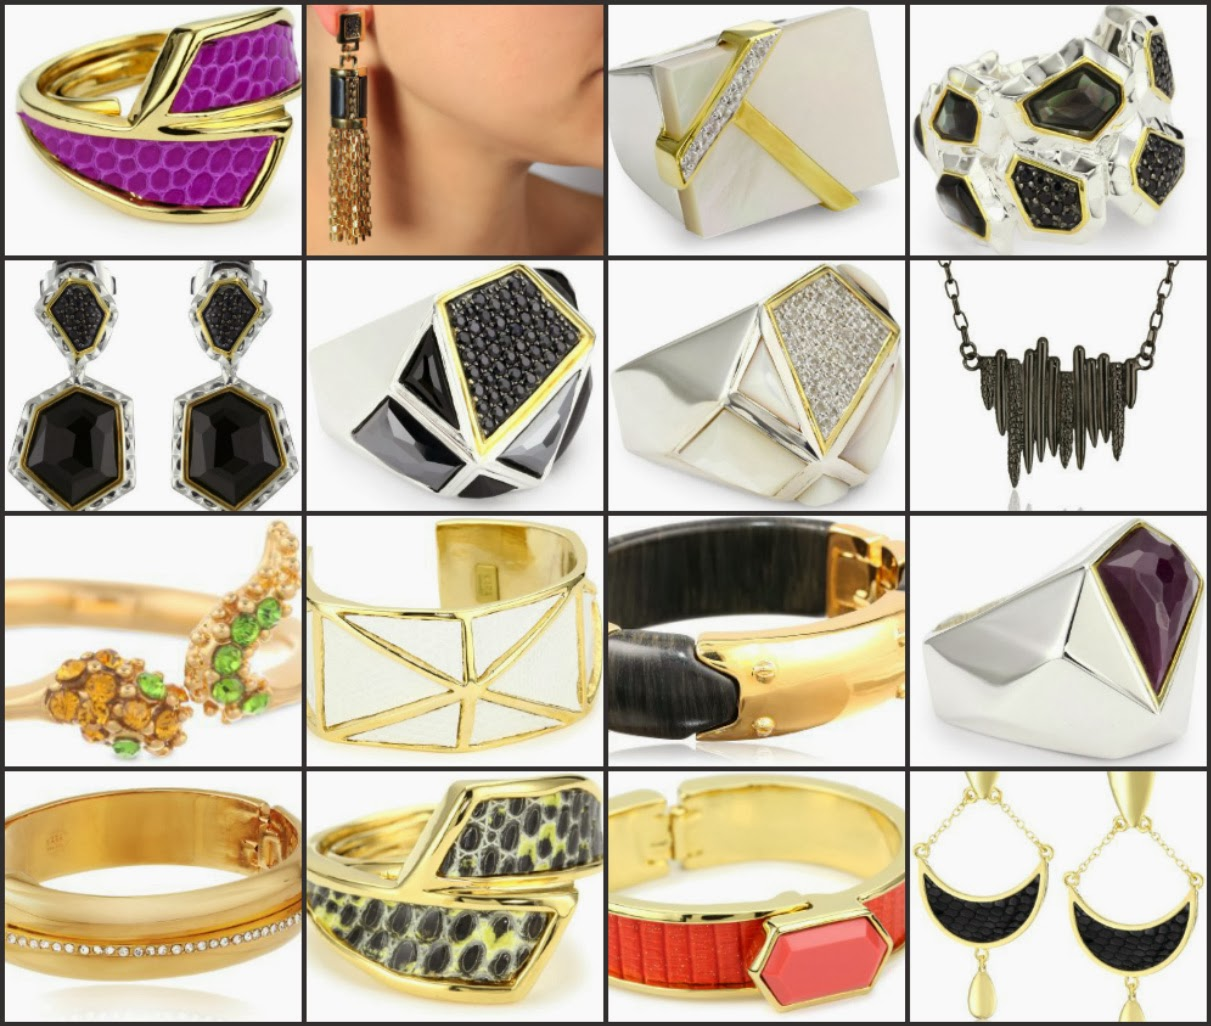 Kara Ross Jewelry - Necklaces, Pendants, jewelry, accessories, Rings